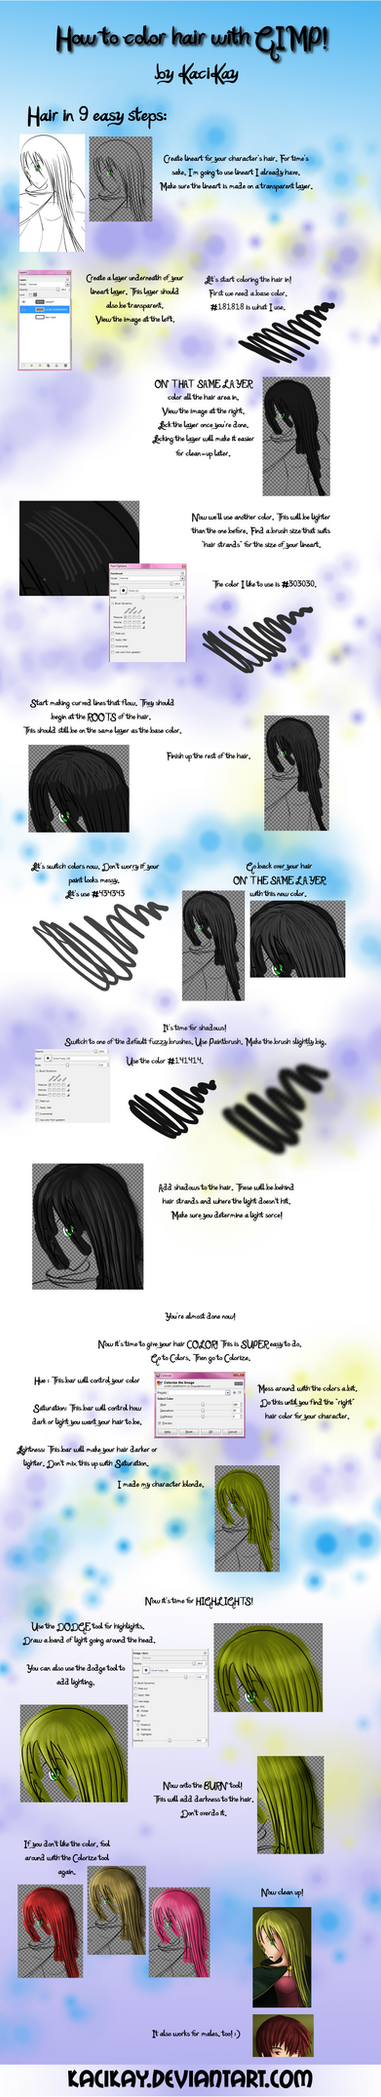 How to Color Hair Tutorial by KaciKay